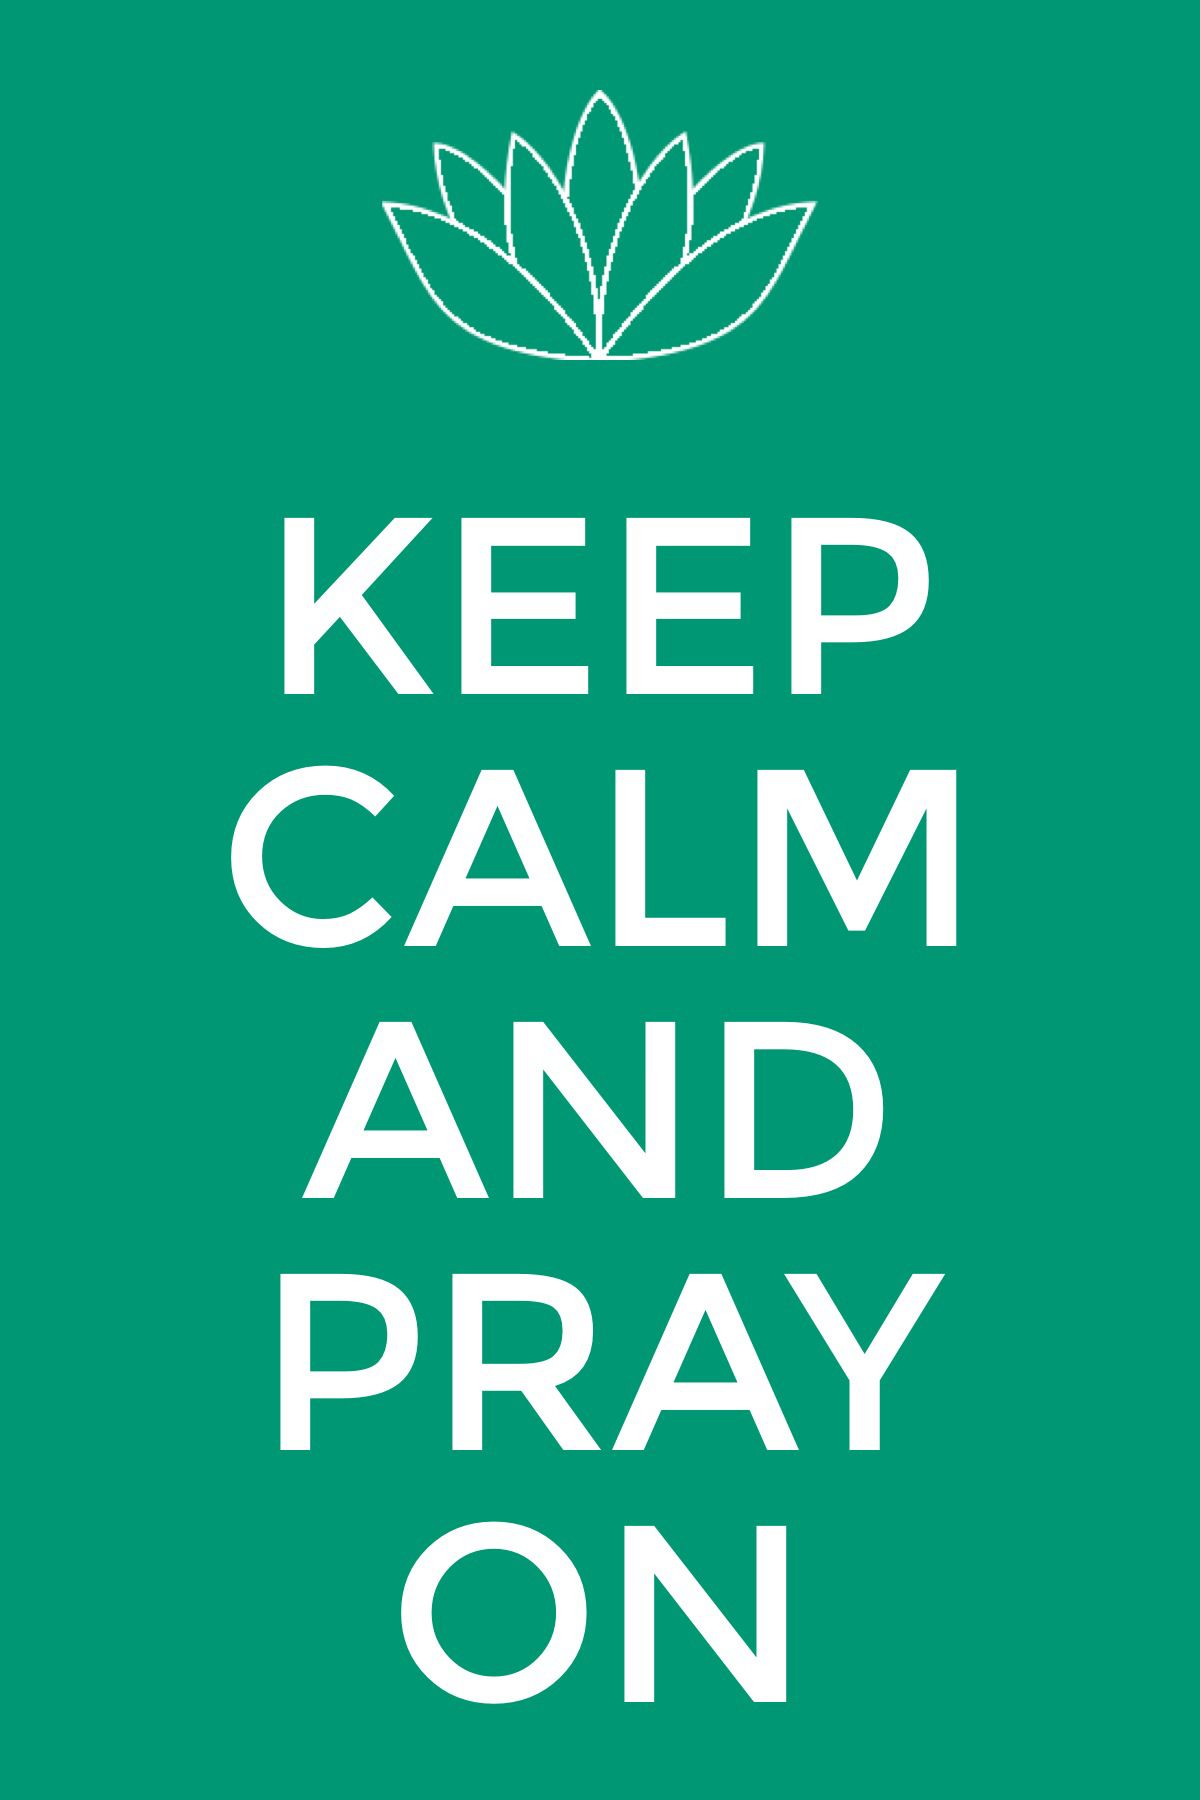 Keep calm and pray | funny sayings/quotes | Pinterest